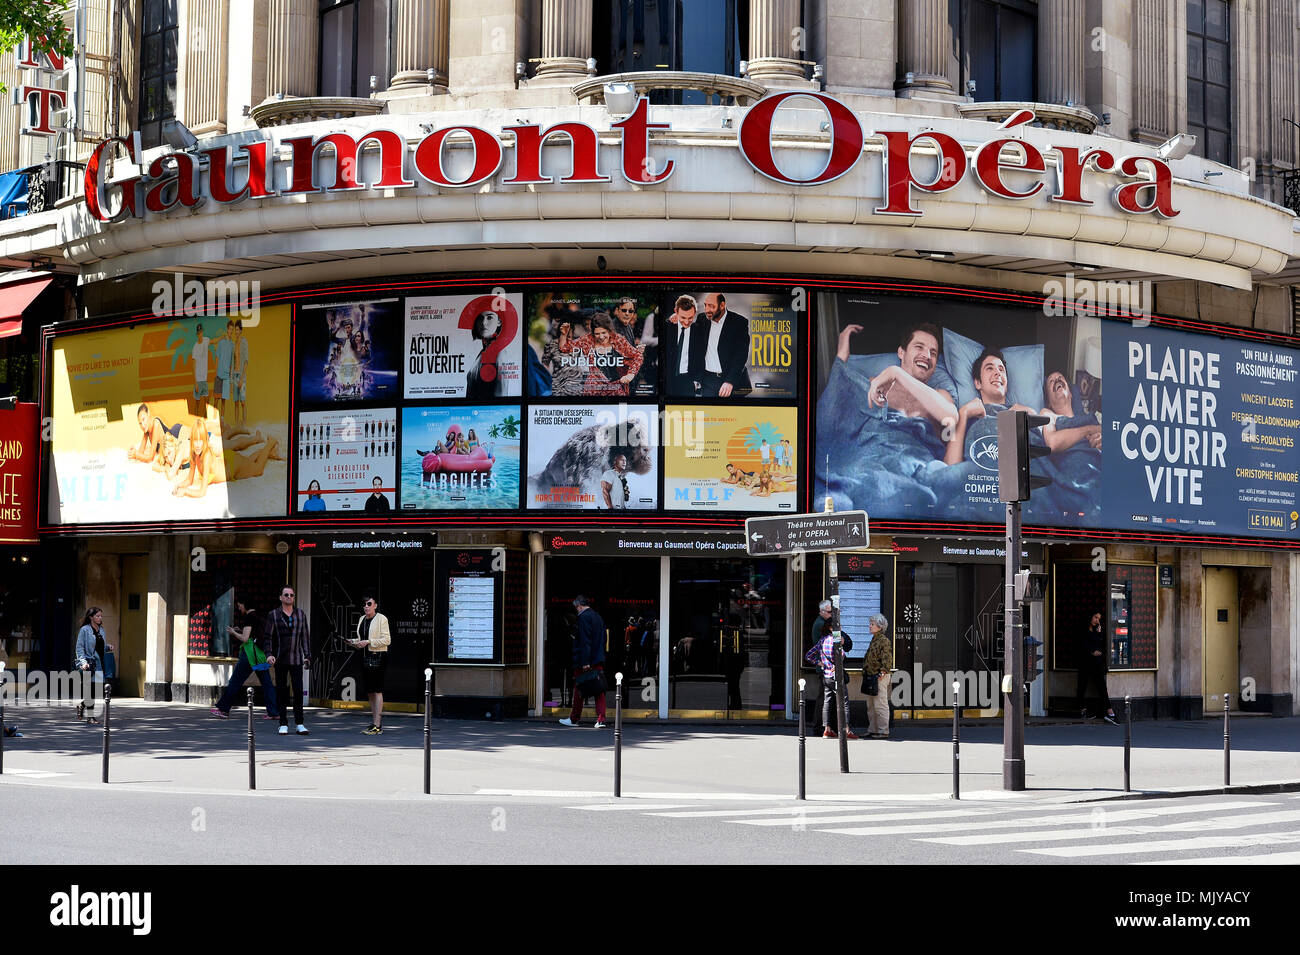 Gaumont Opéra Cinema - Paris - France Stock Photo - Alamy